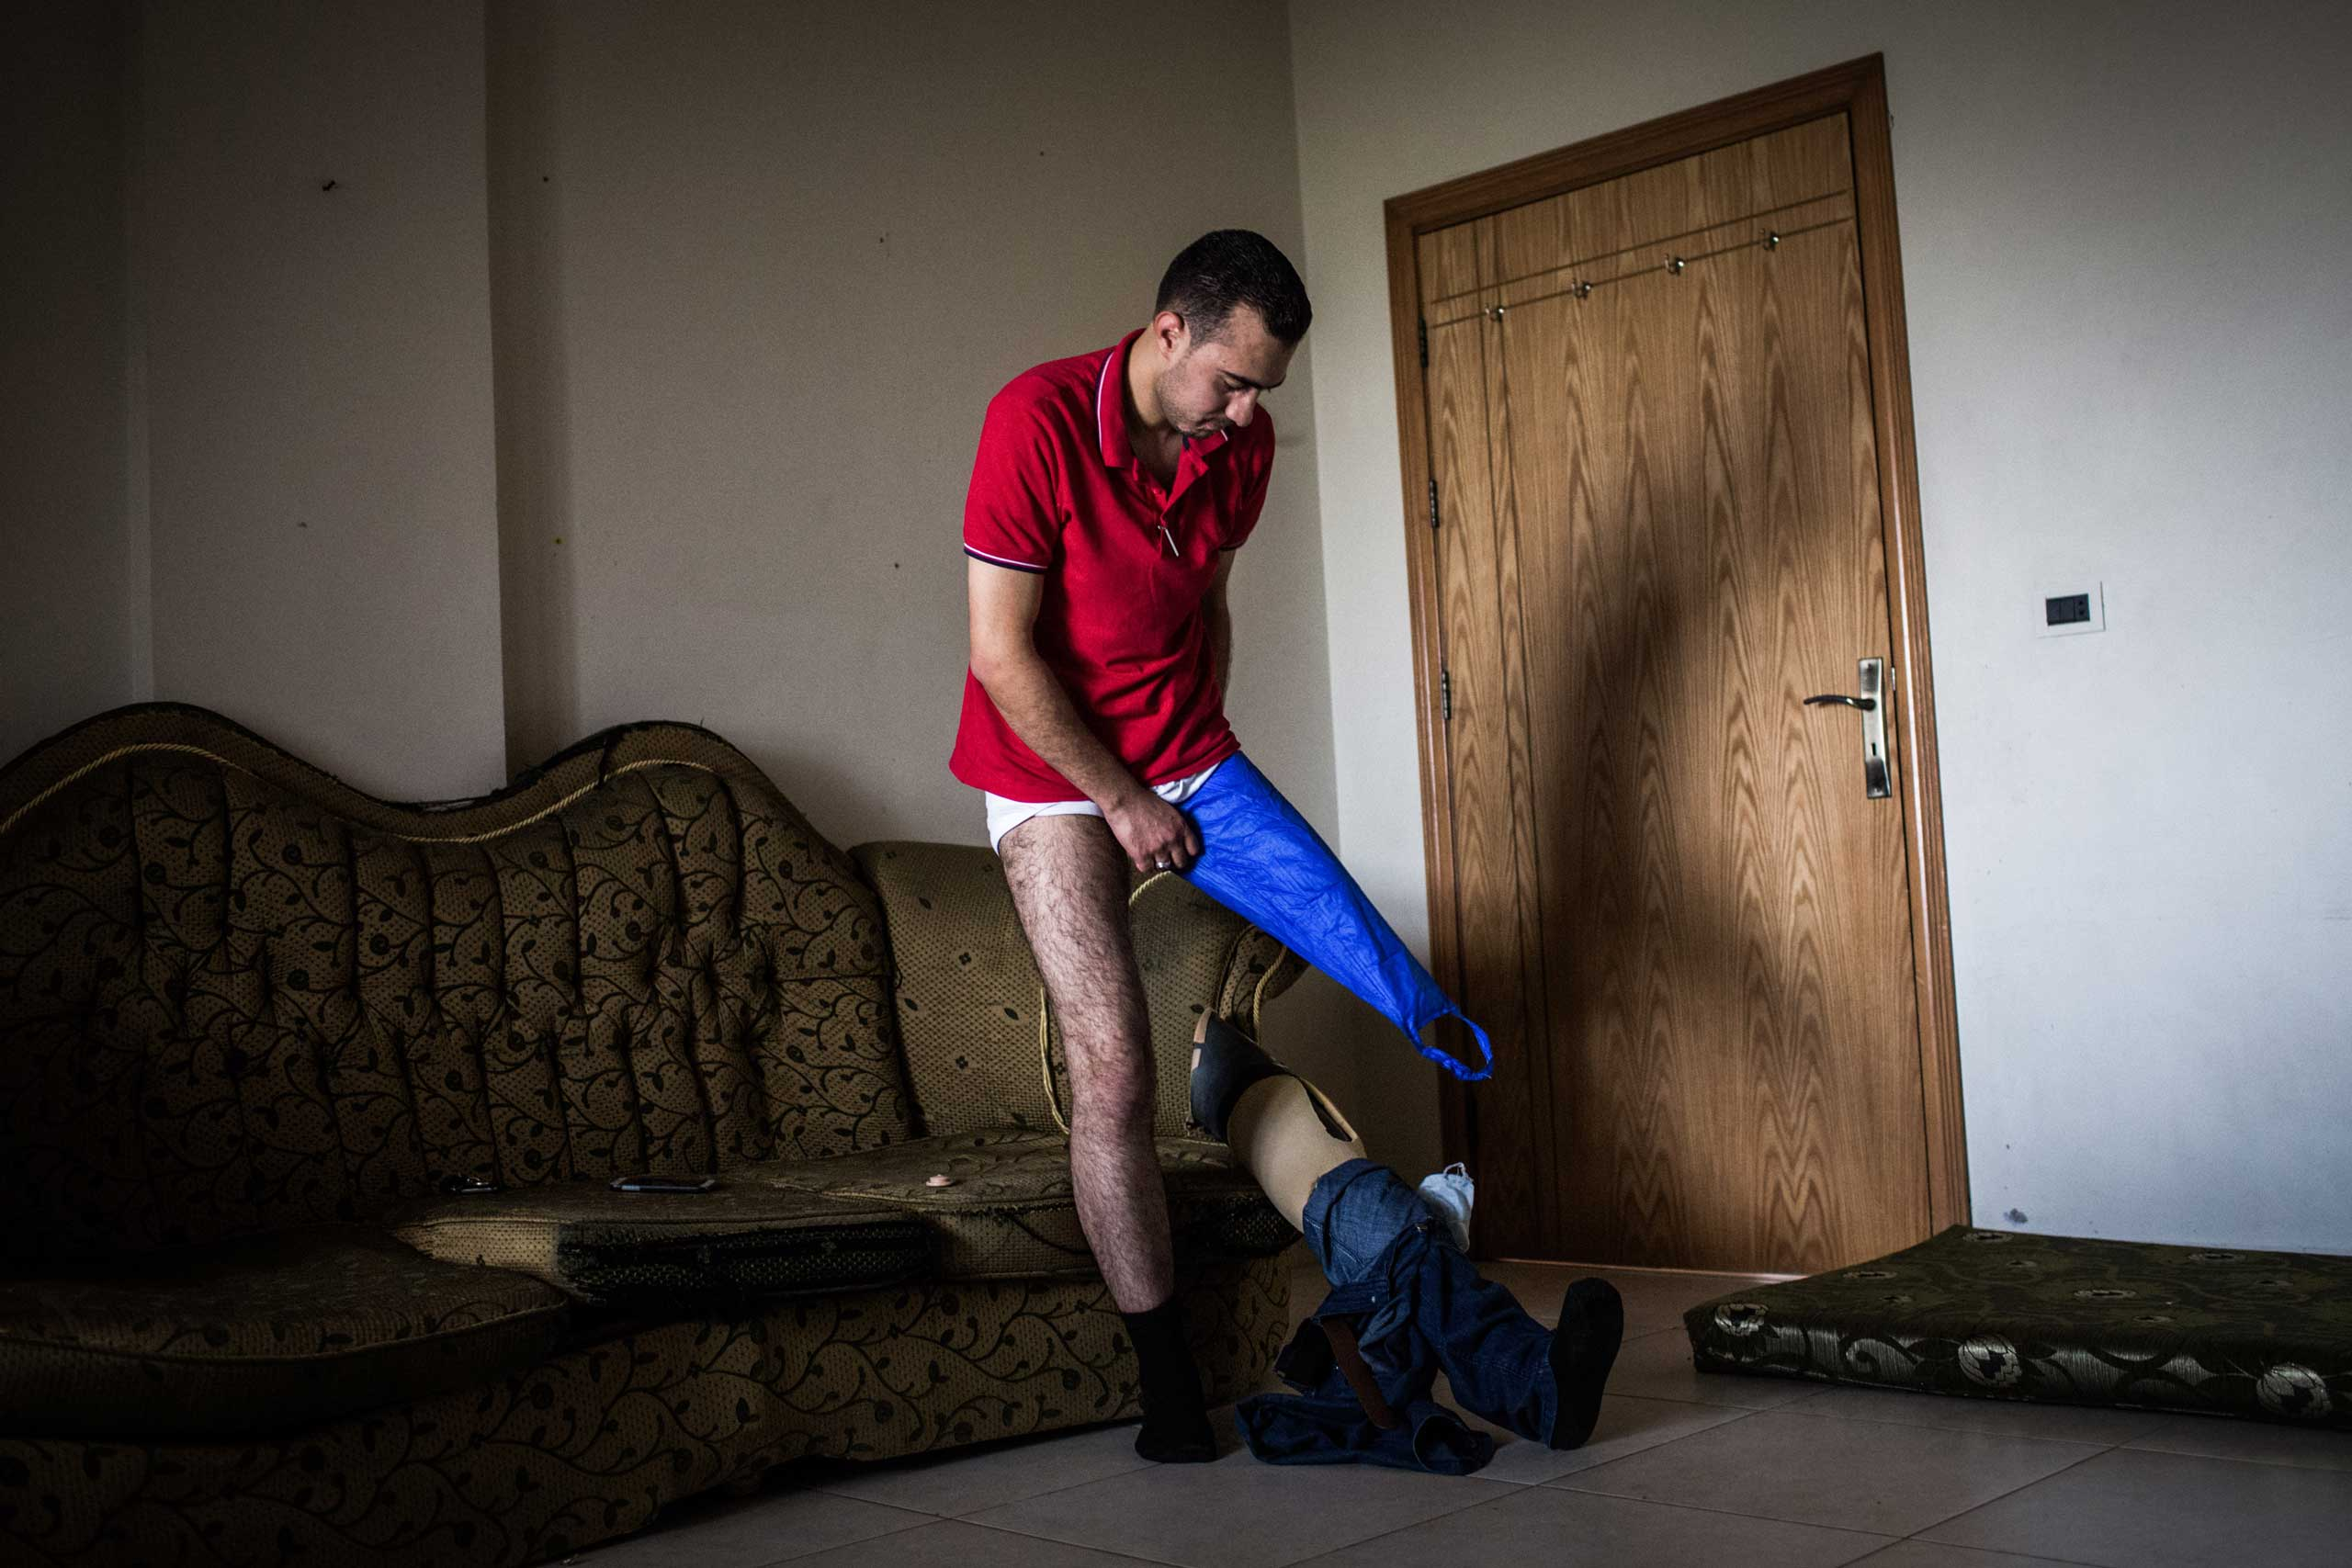 Ihsan fits his prosthetic at home in Qab Elias, Lebanon, June 19, 2014. The dental student, 22, was injured in December 2012 when a bomb fell nearby, leading to two surgeries and the loss of a leg. He continued to volunteer.